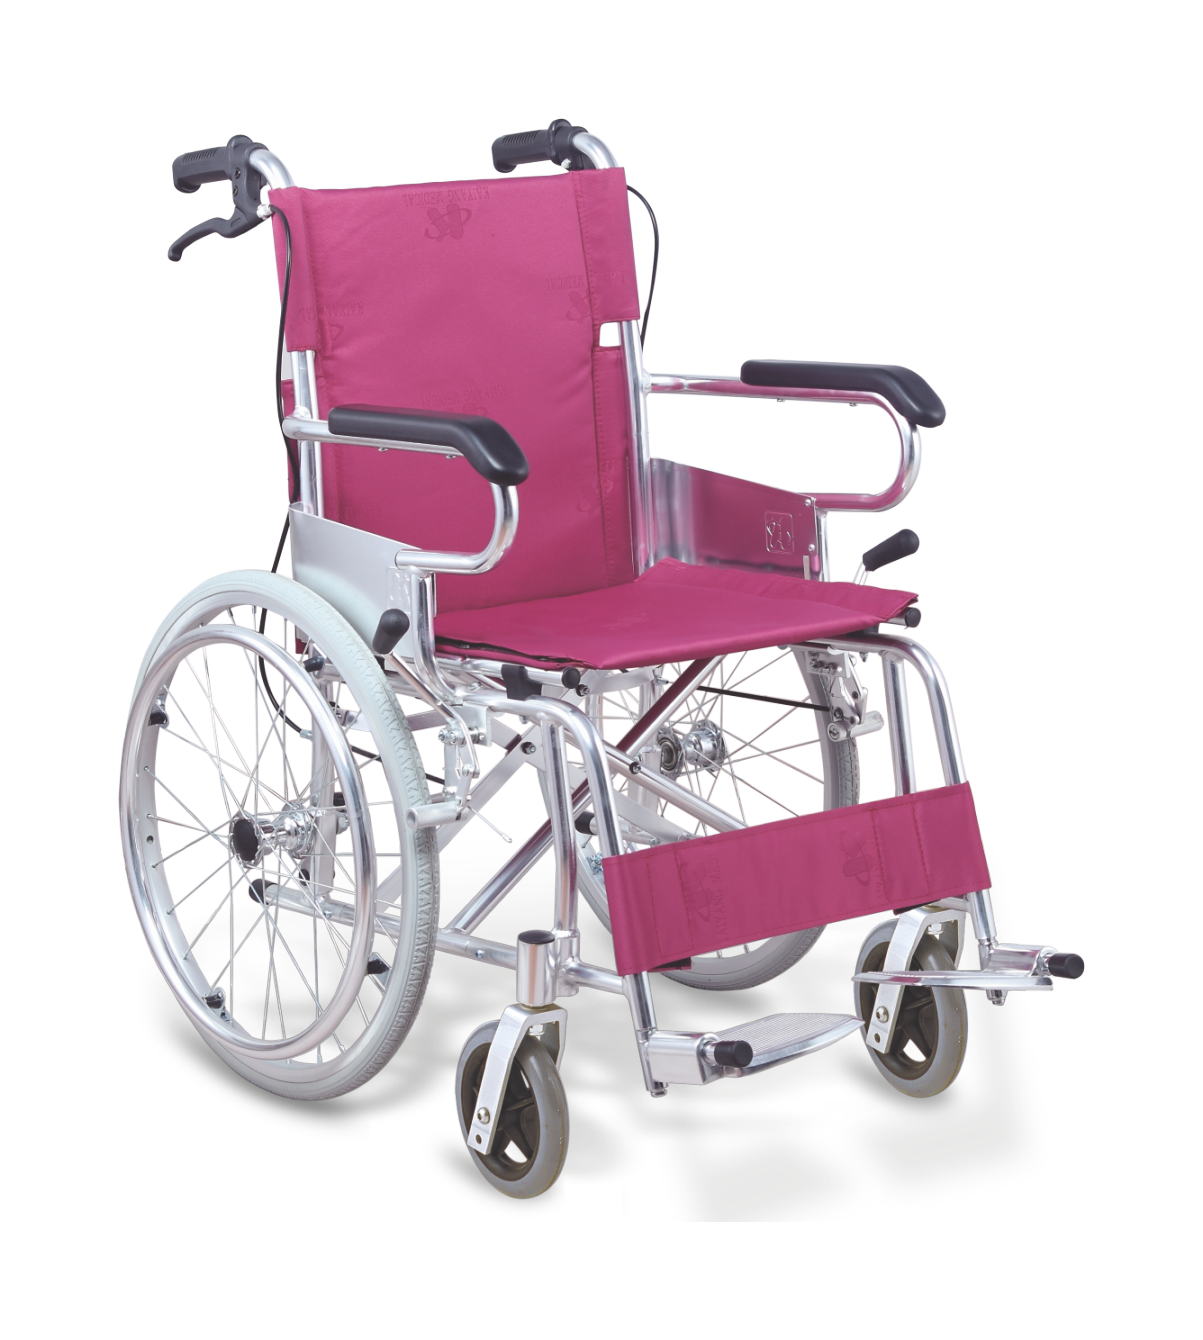 Medical Wheelchair Png image #40993